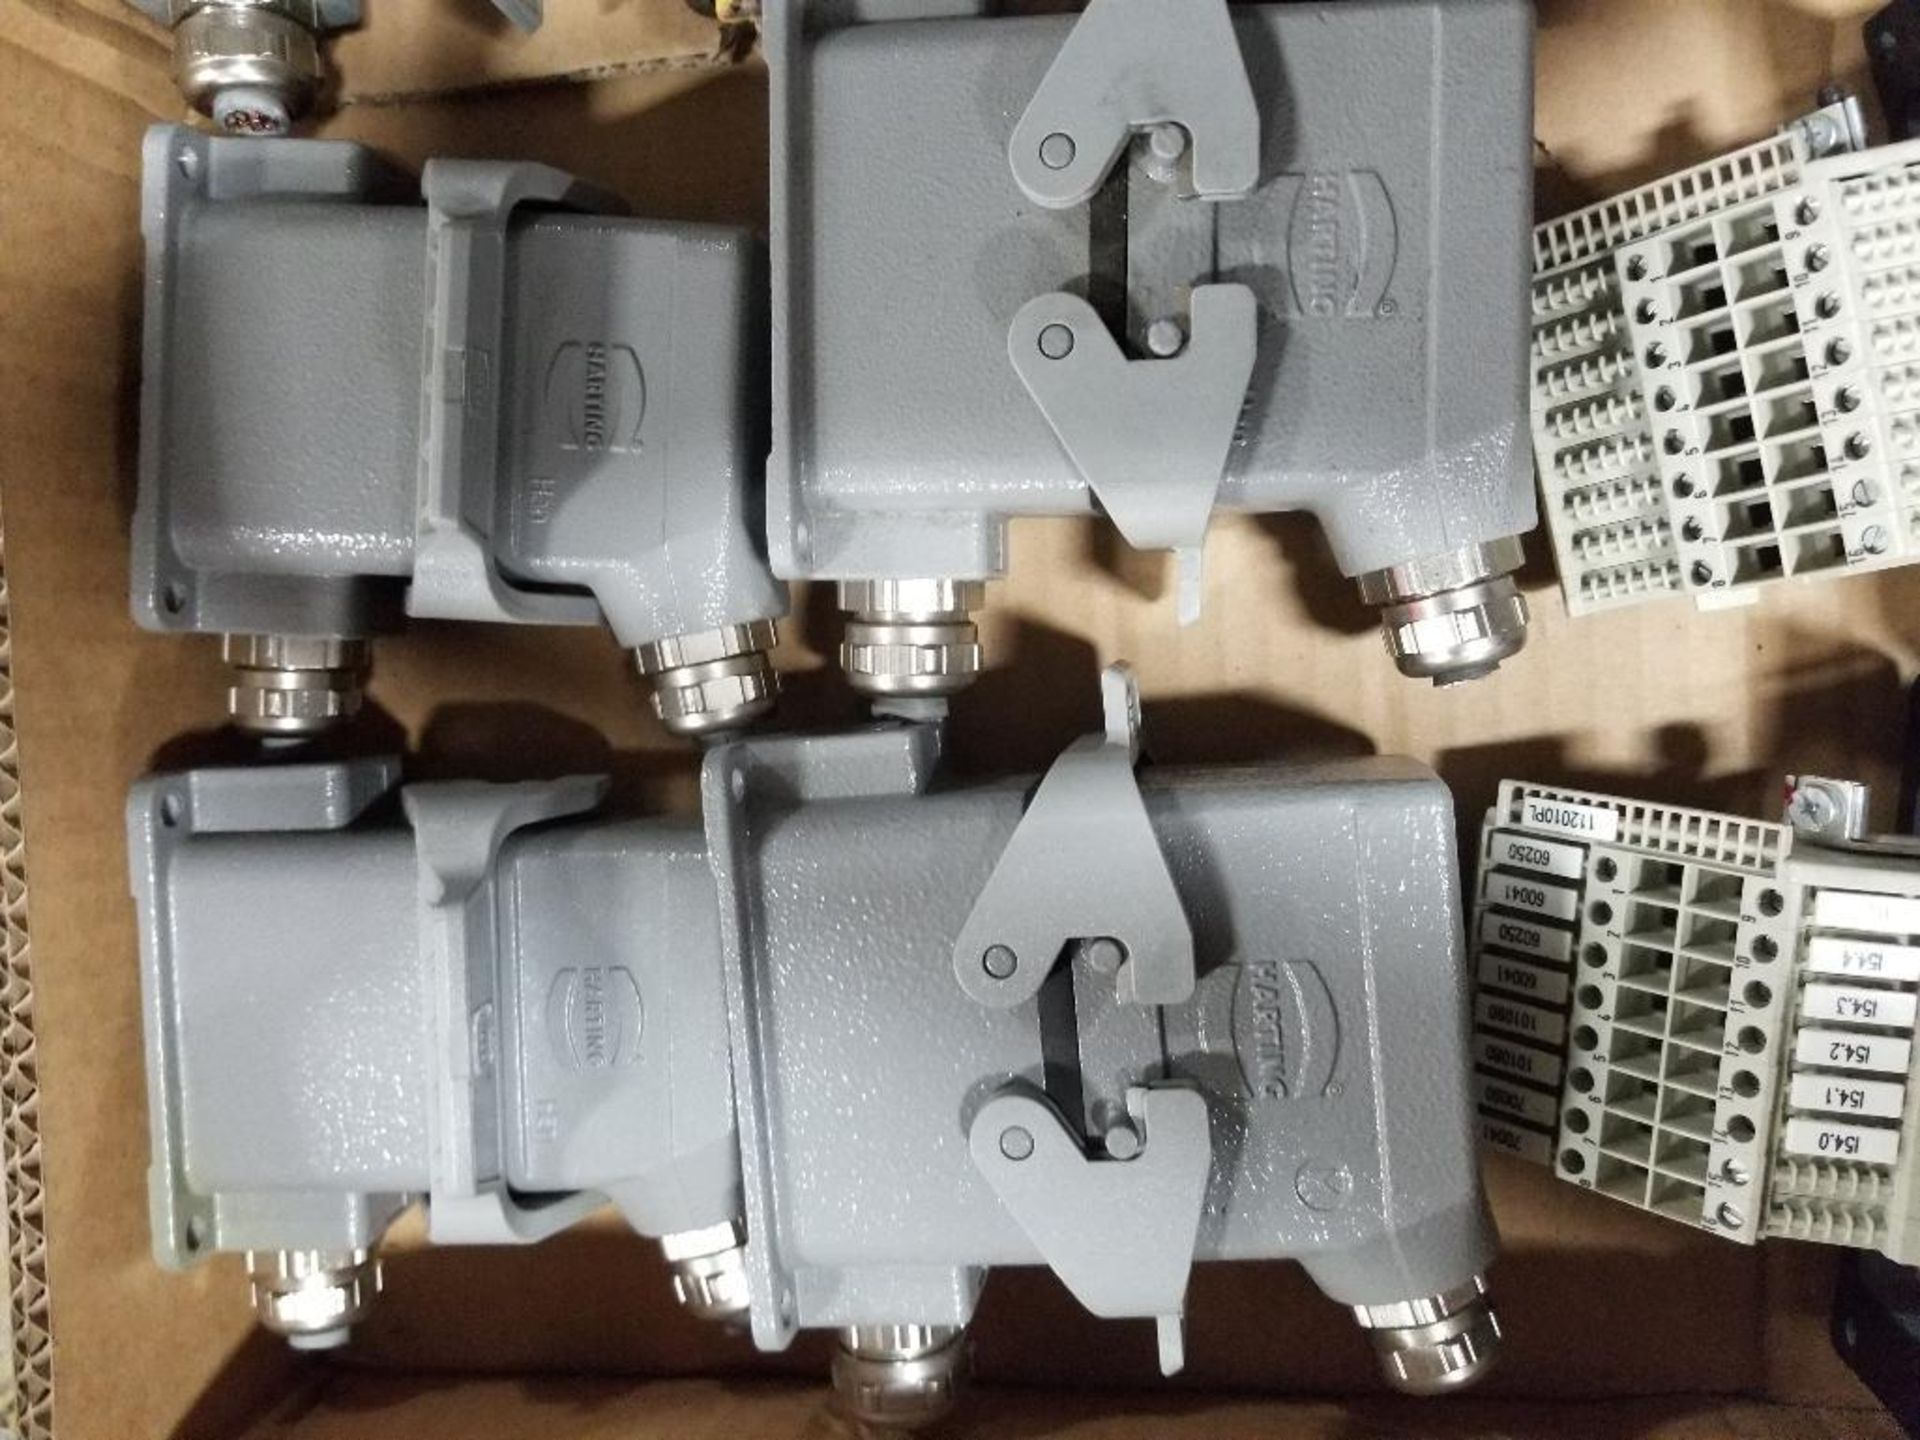 Qty 16 - Harting connection plugs. - Image 4 of 5